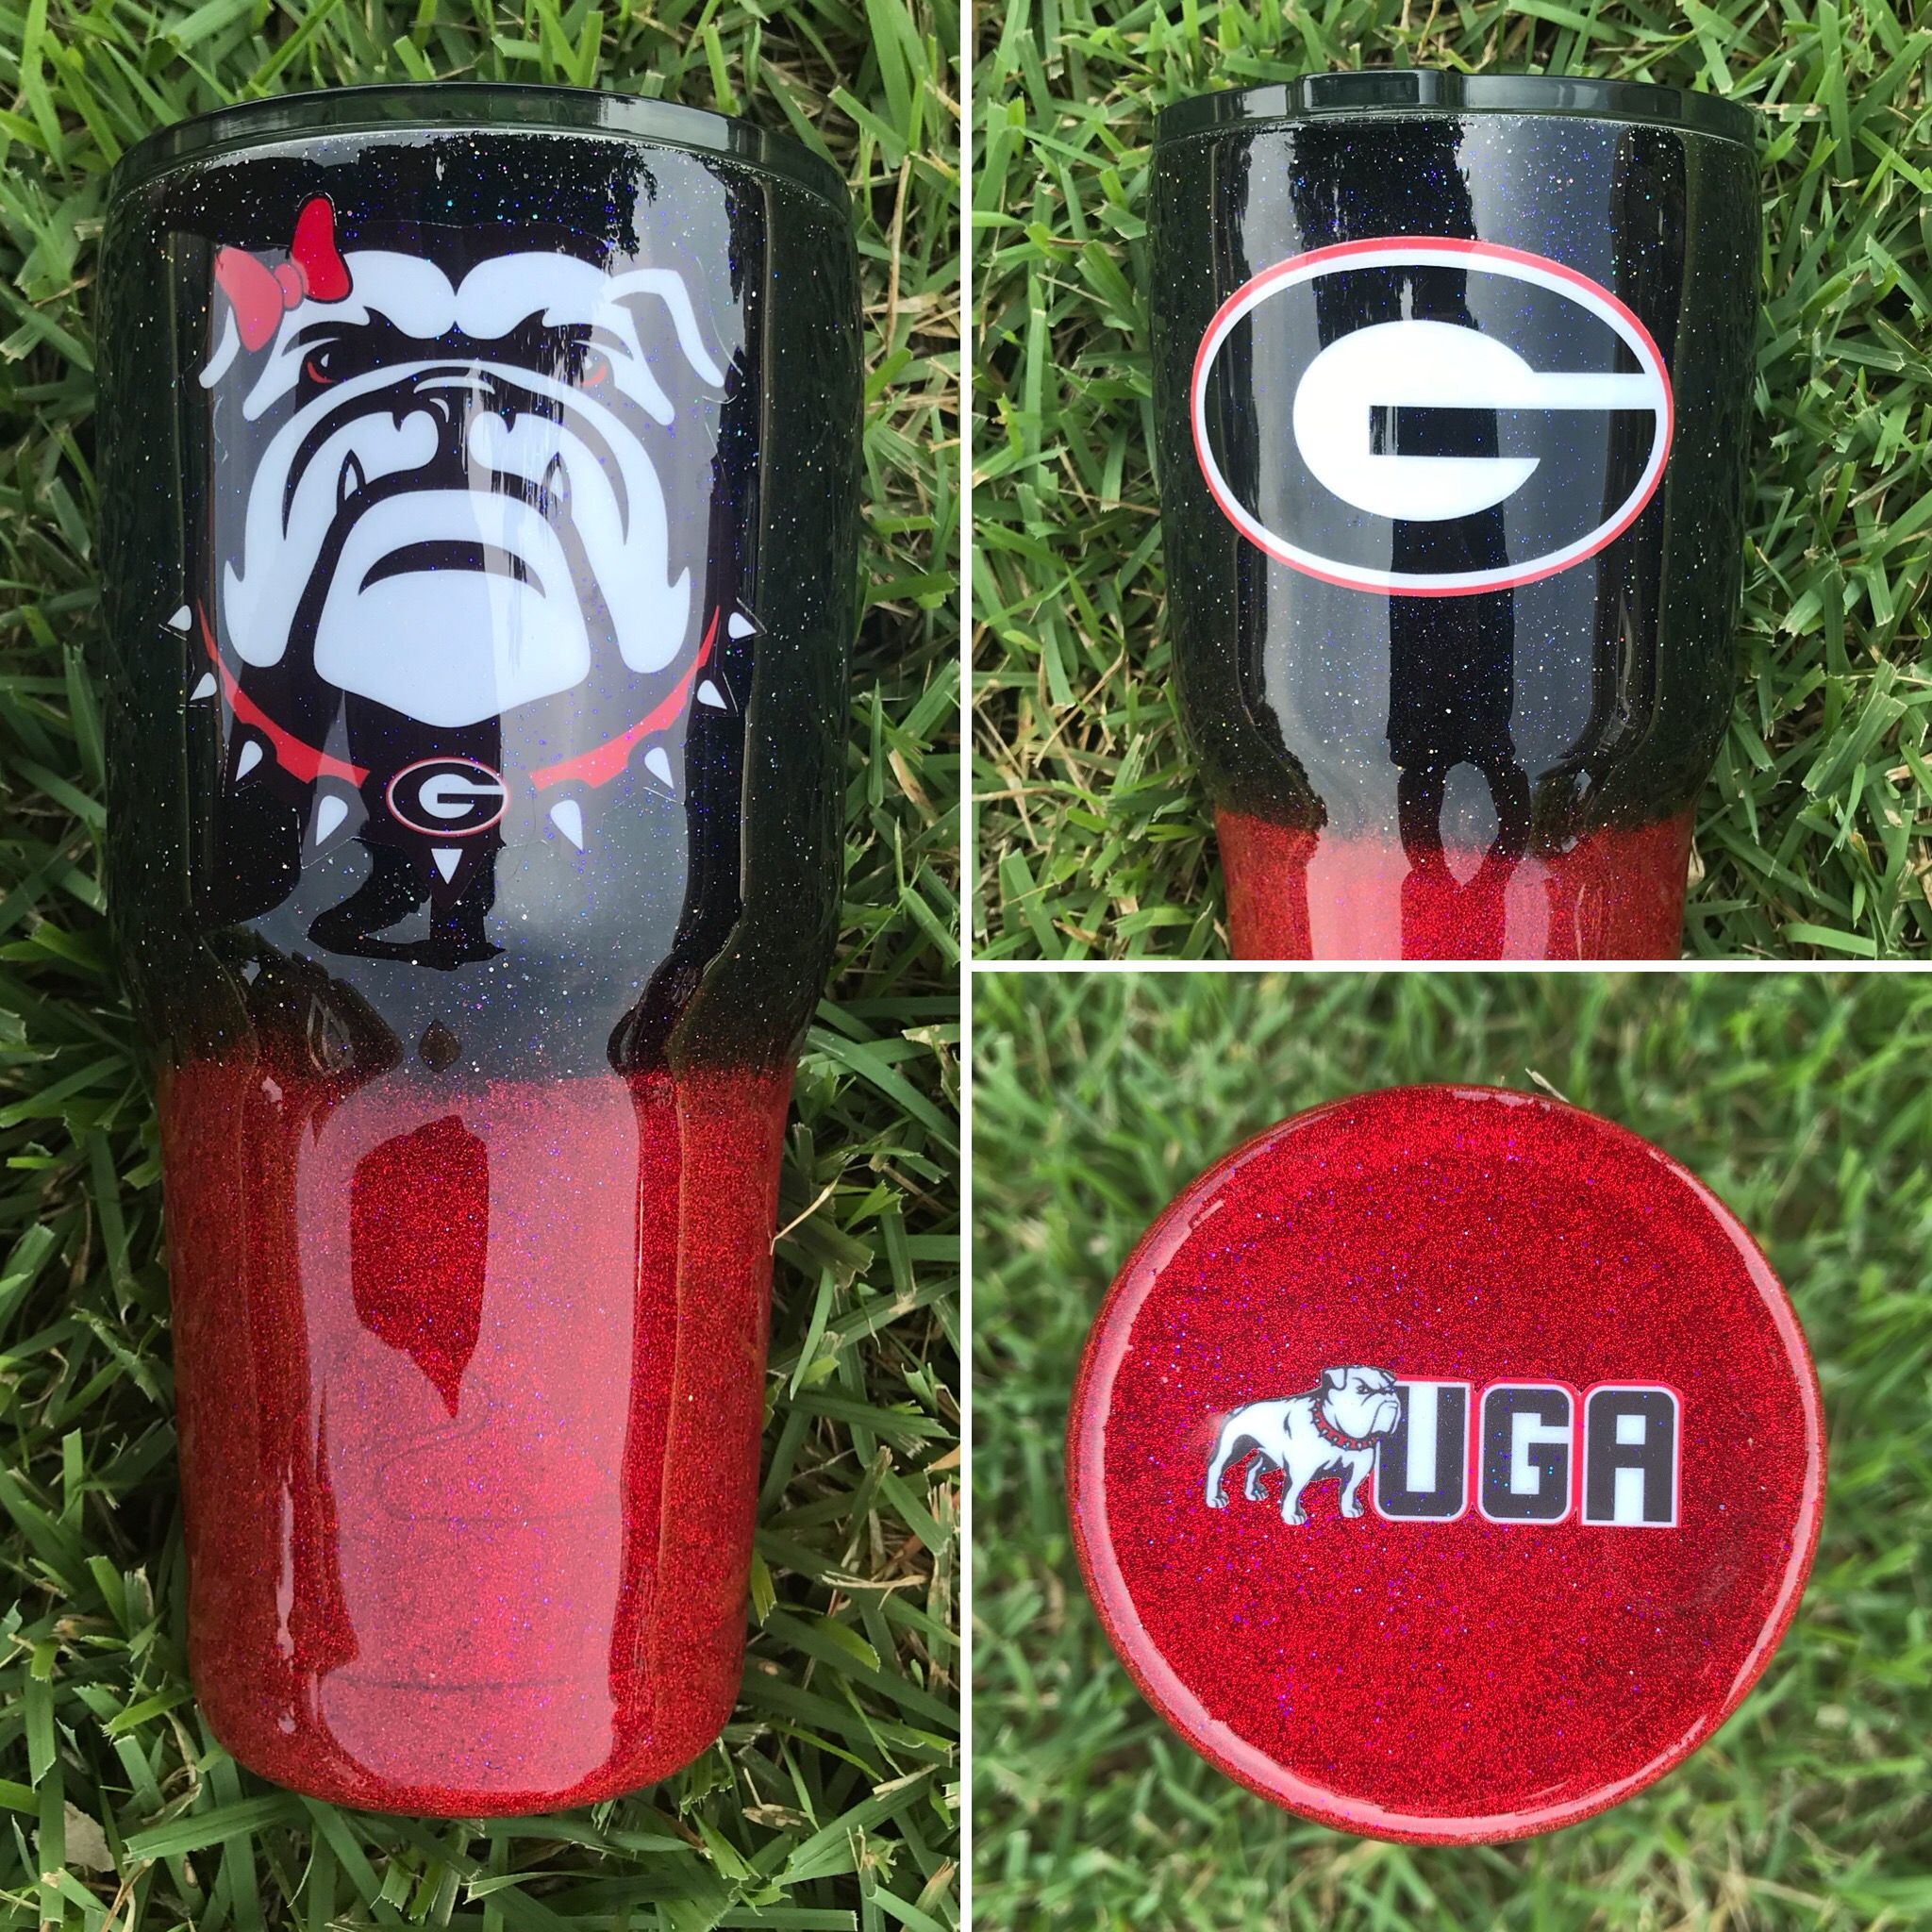 Uga Bulldogs Glitter Tumbler Crafty Creations By Amber Nissen Custom Tumbler Cups Glitter Tumbler Cups Tumbler Cups Diy